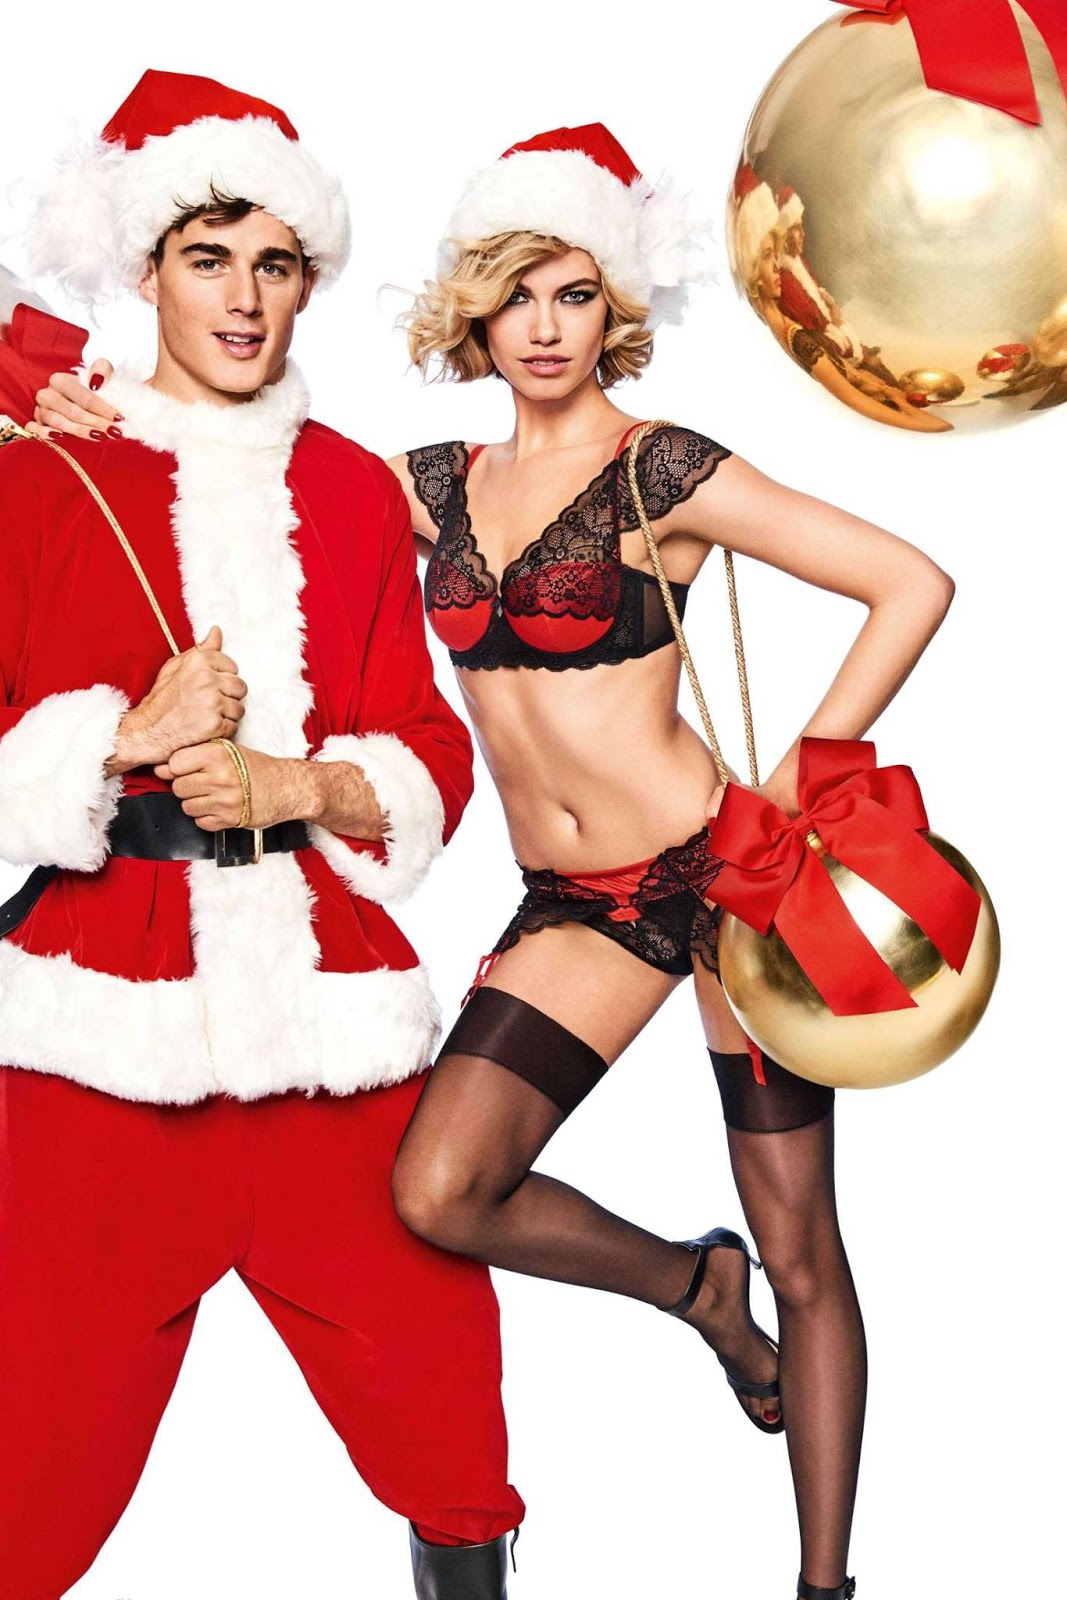 Yamamay Christmas 2017 Collection starring Hailey Clauson